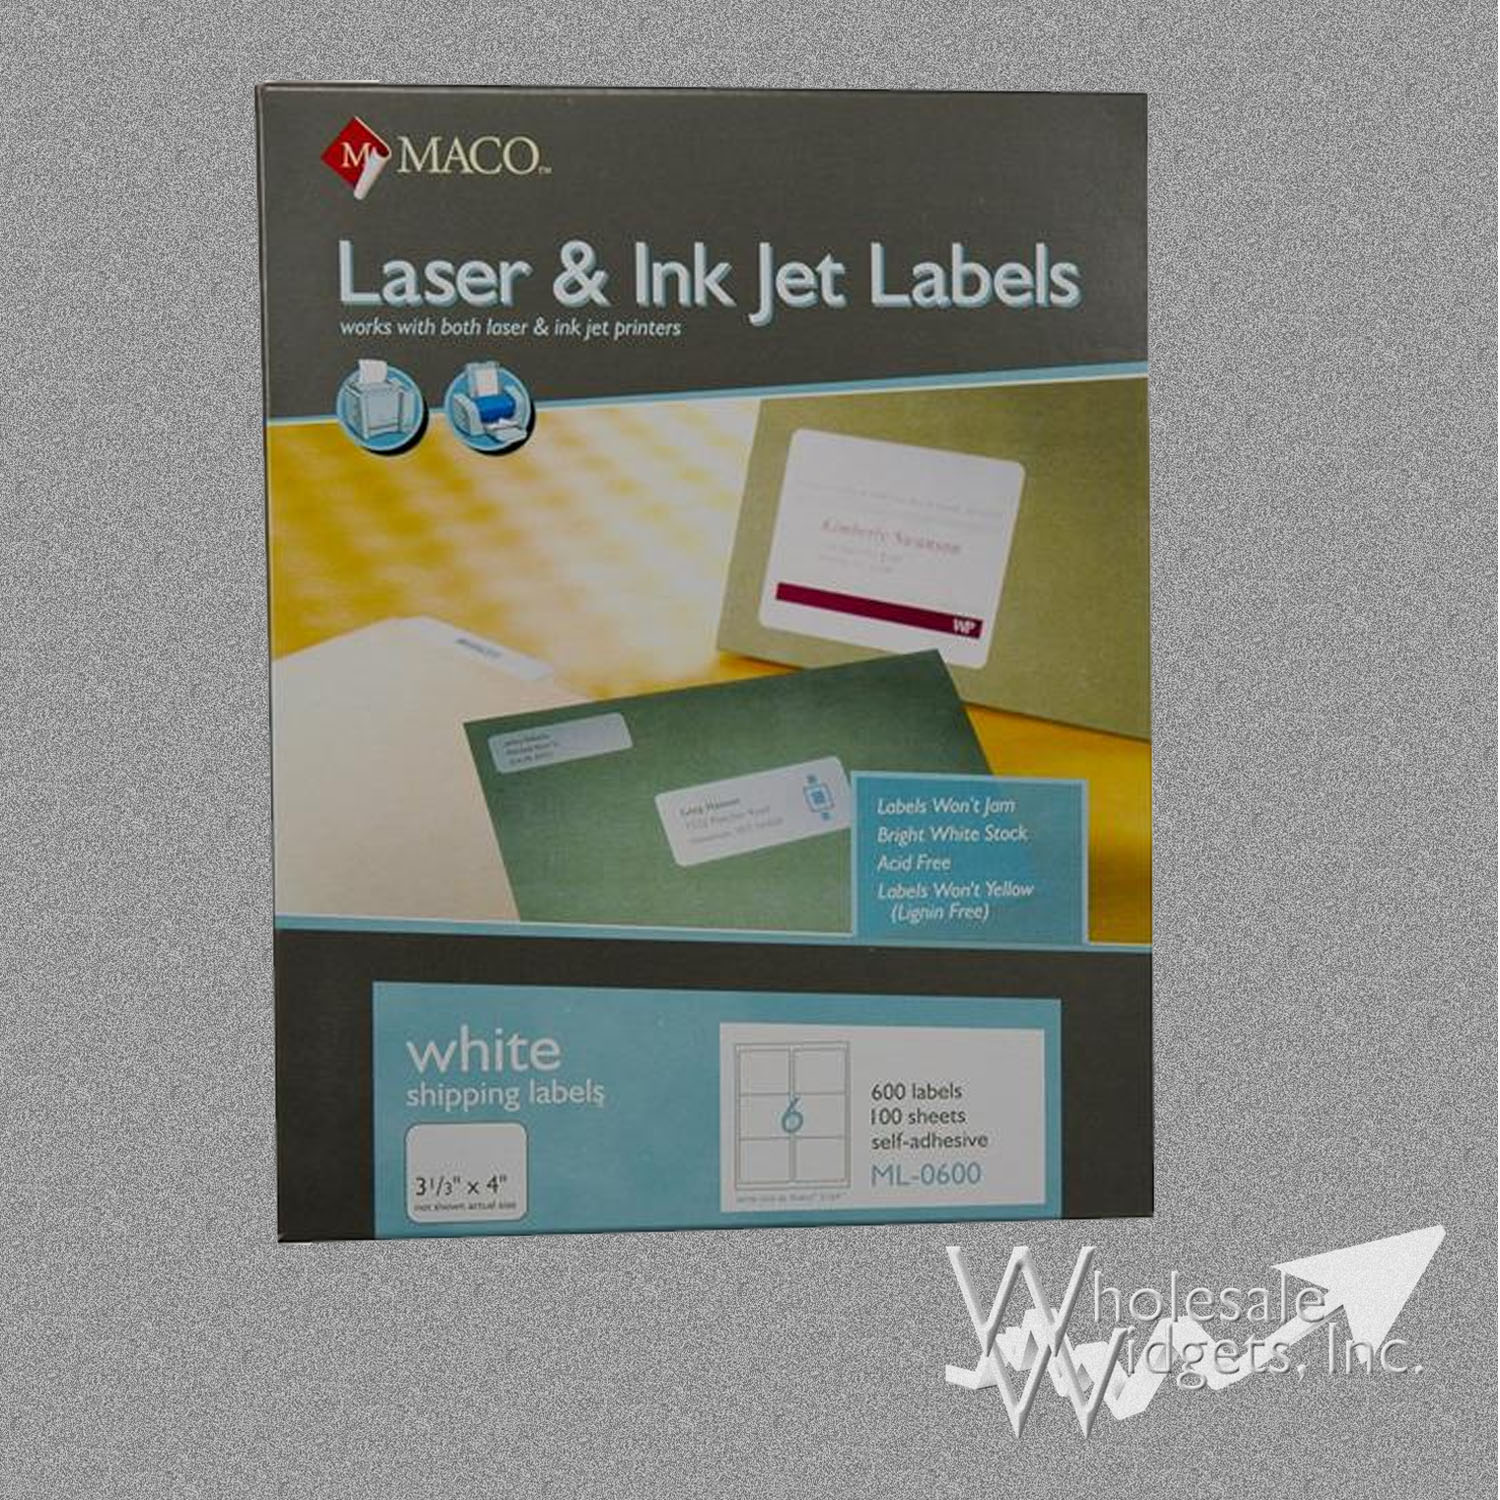 maco ml0600 3 1  3 x 4 labels for use in 3 3 x 4  white